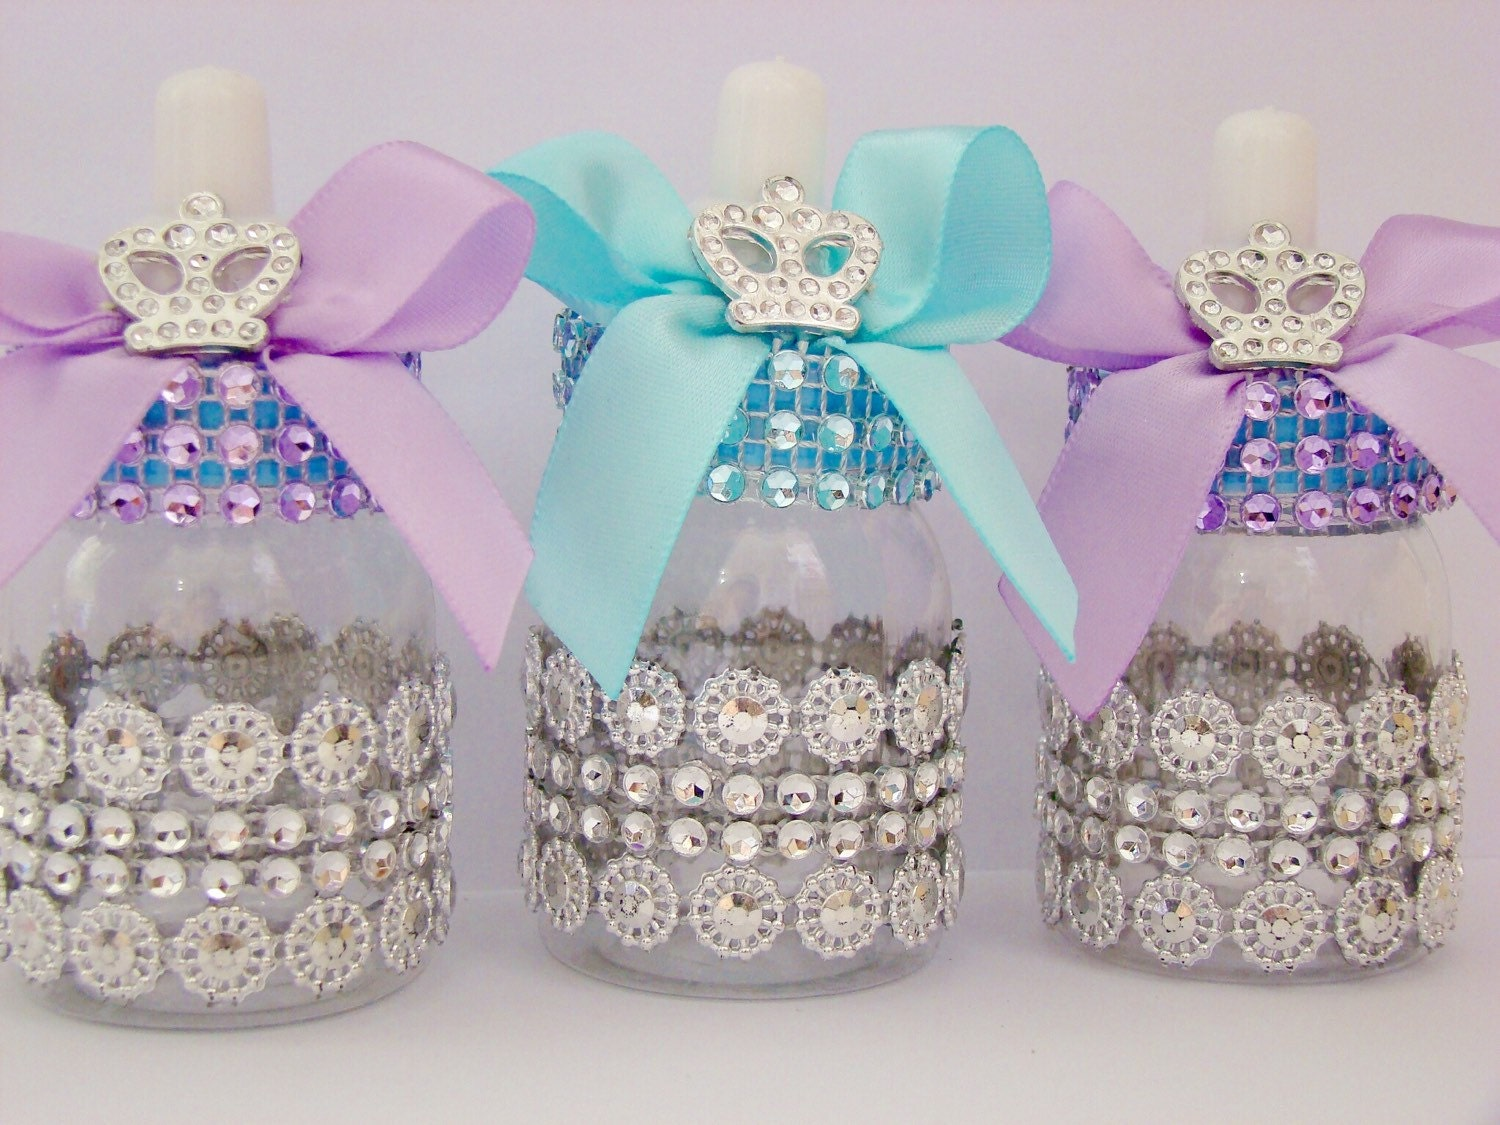 12 frozen baby shower favors under the sea by marshmallowfavors